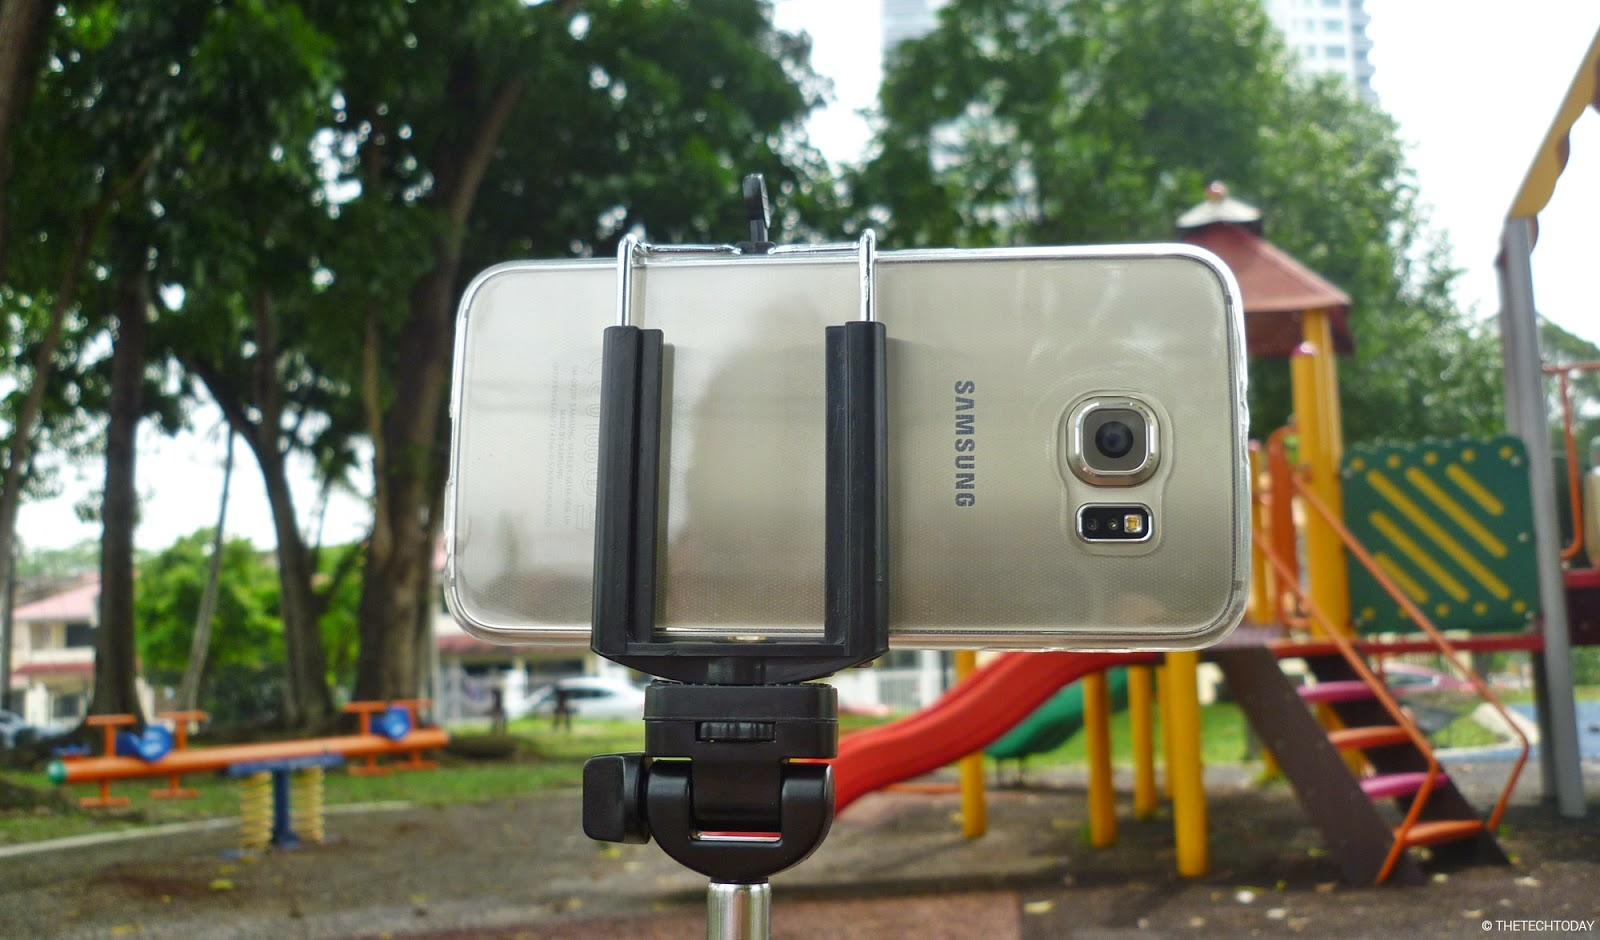 galaxy-s6-gold-camera-selfie-stick